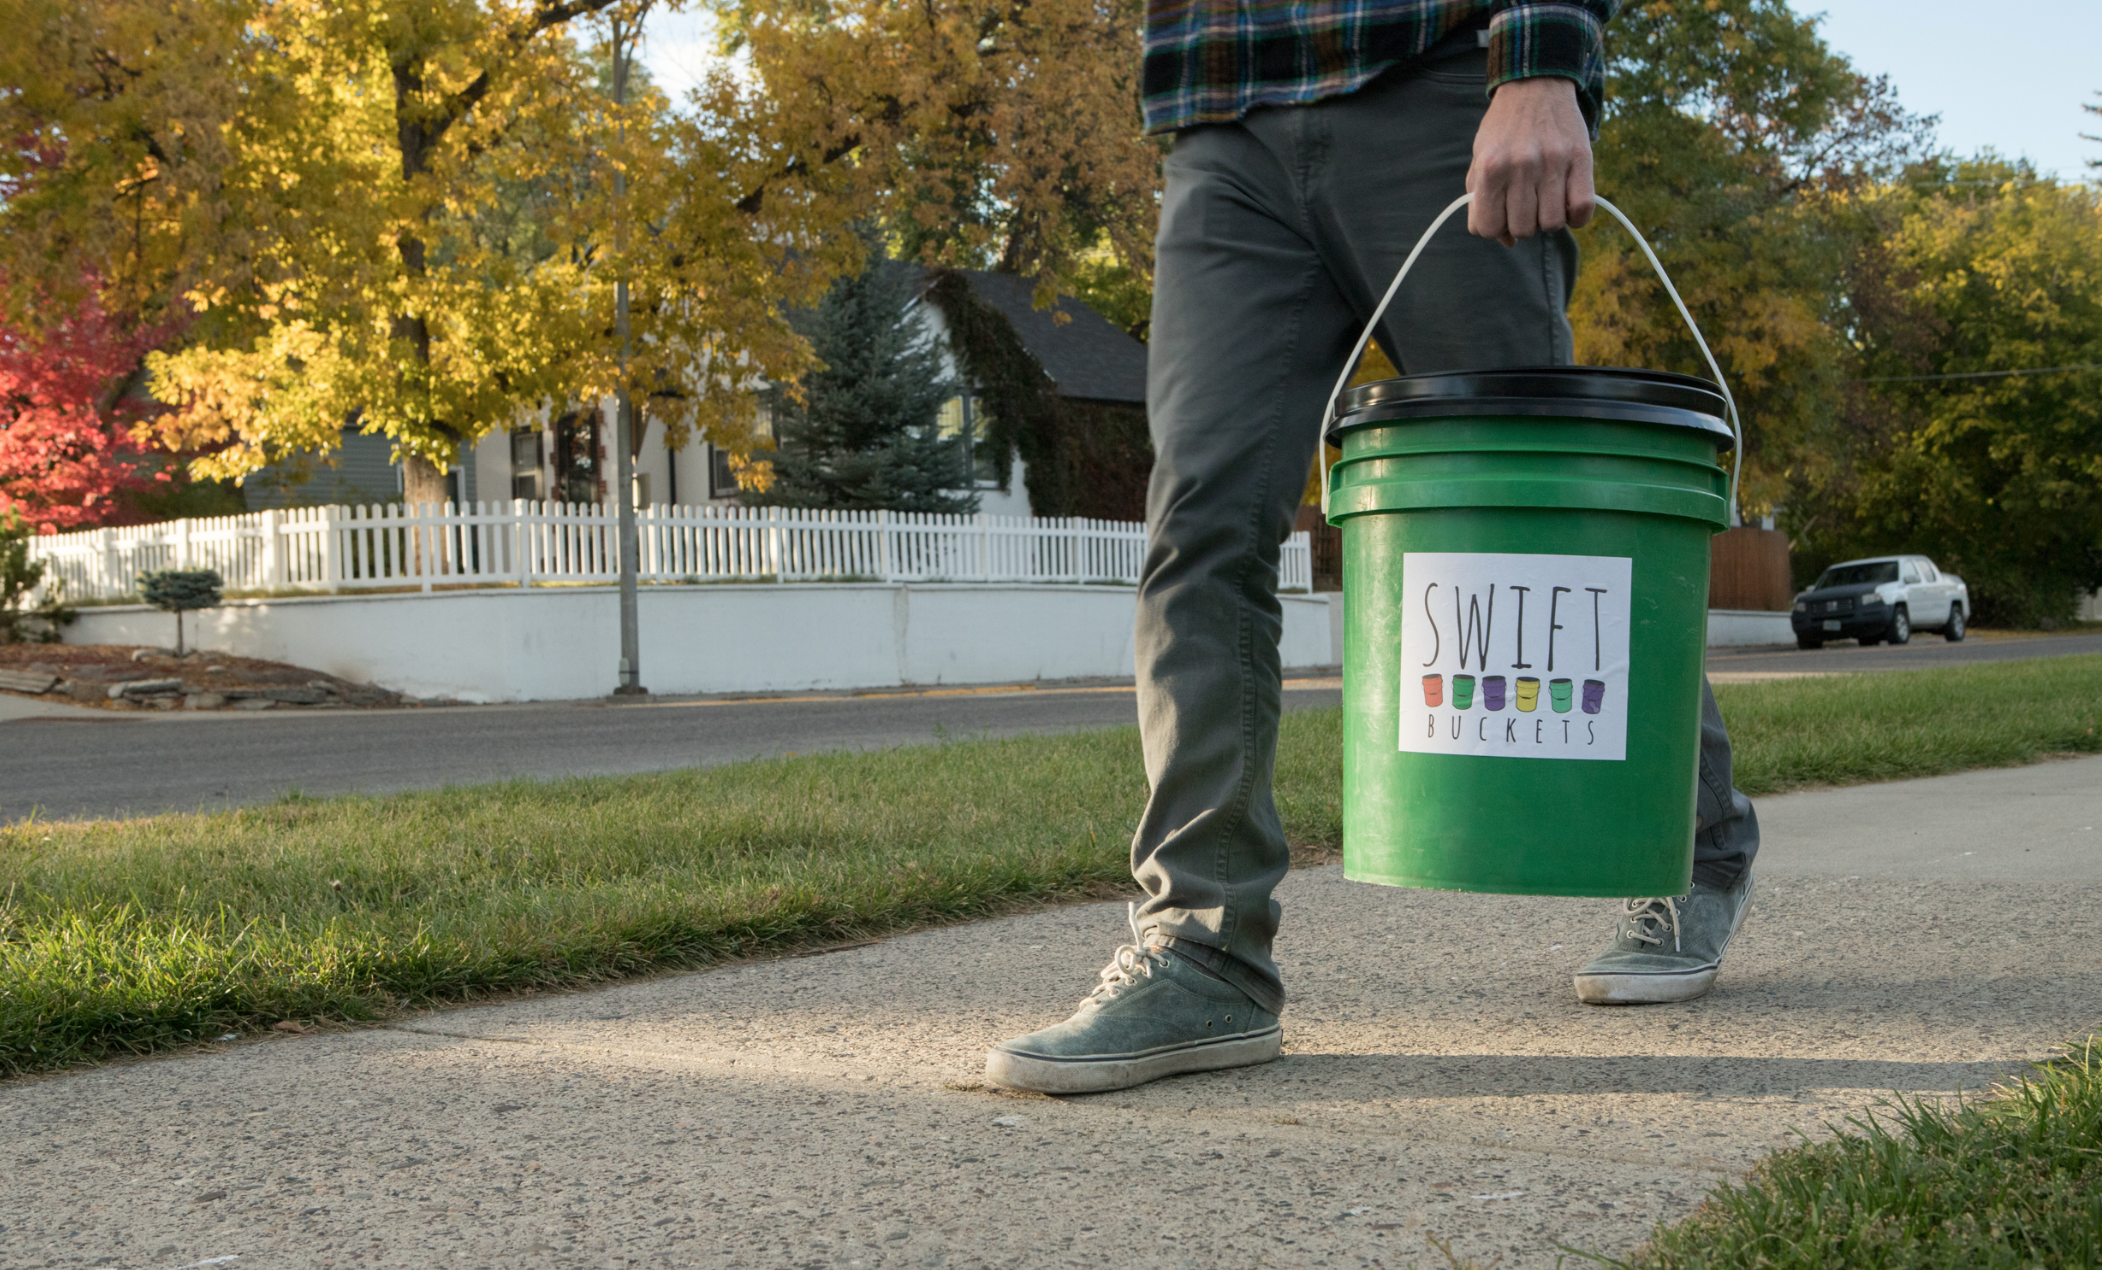 Swift Buckets is a food waste service that allows customers to buy and give back to the soil.